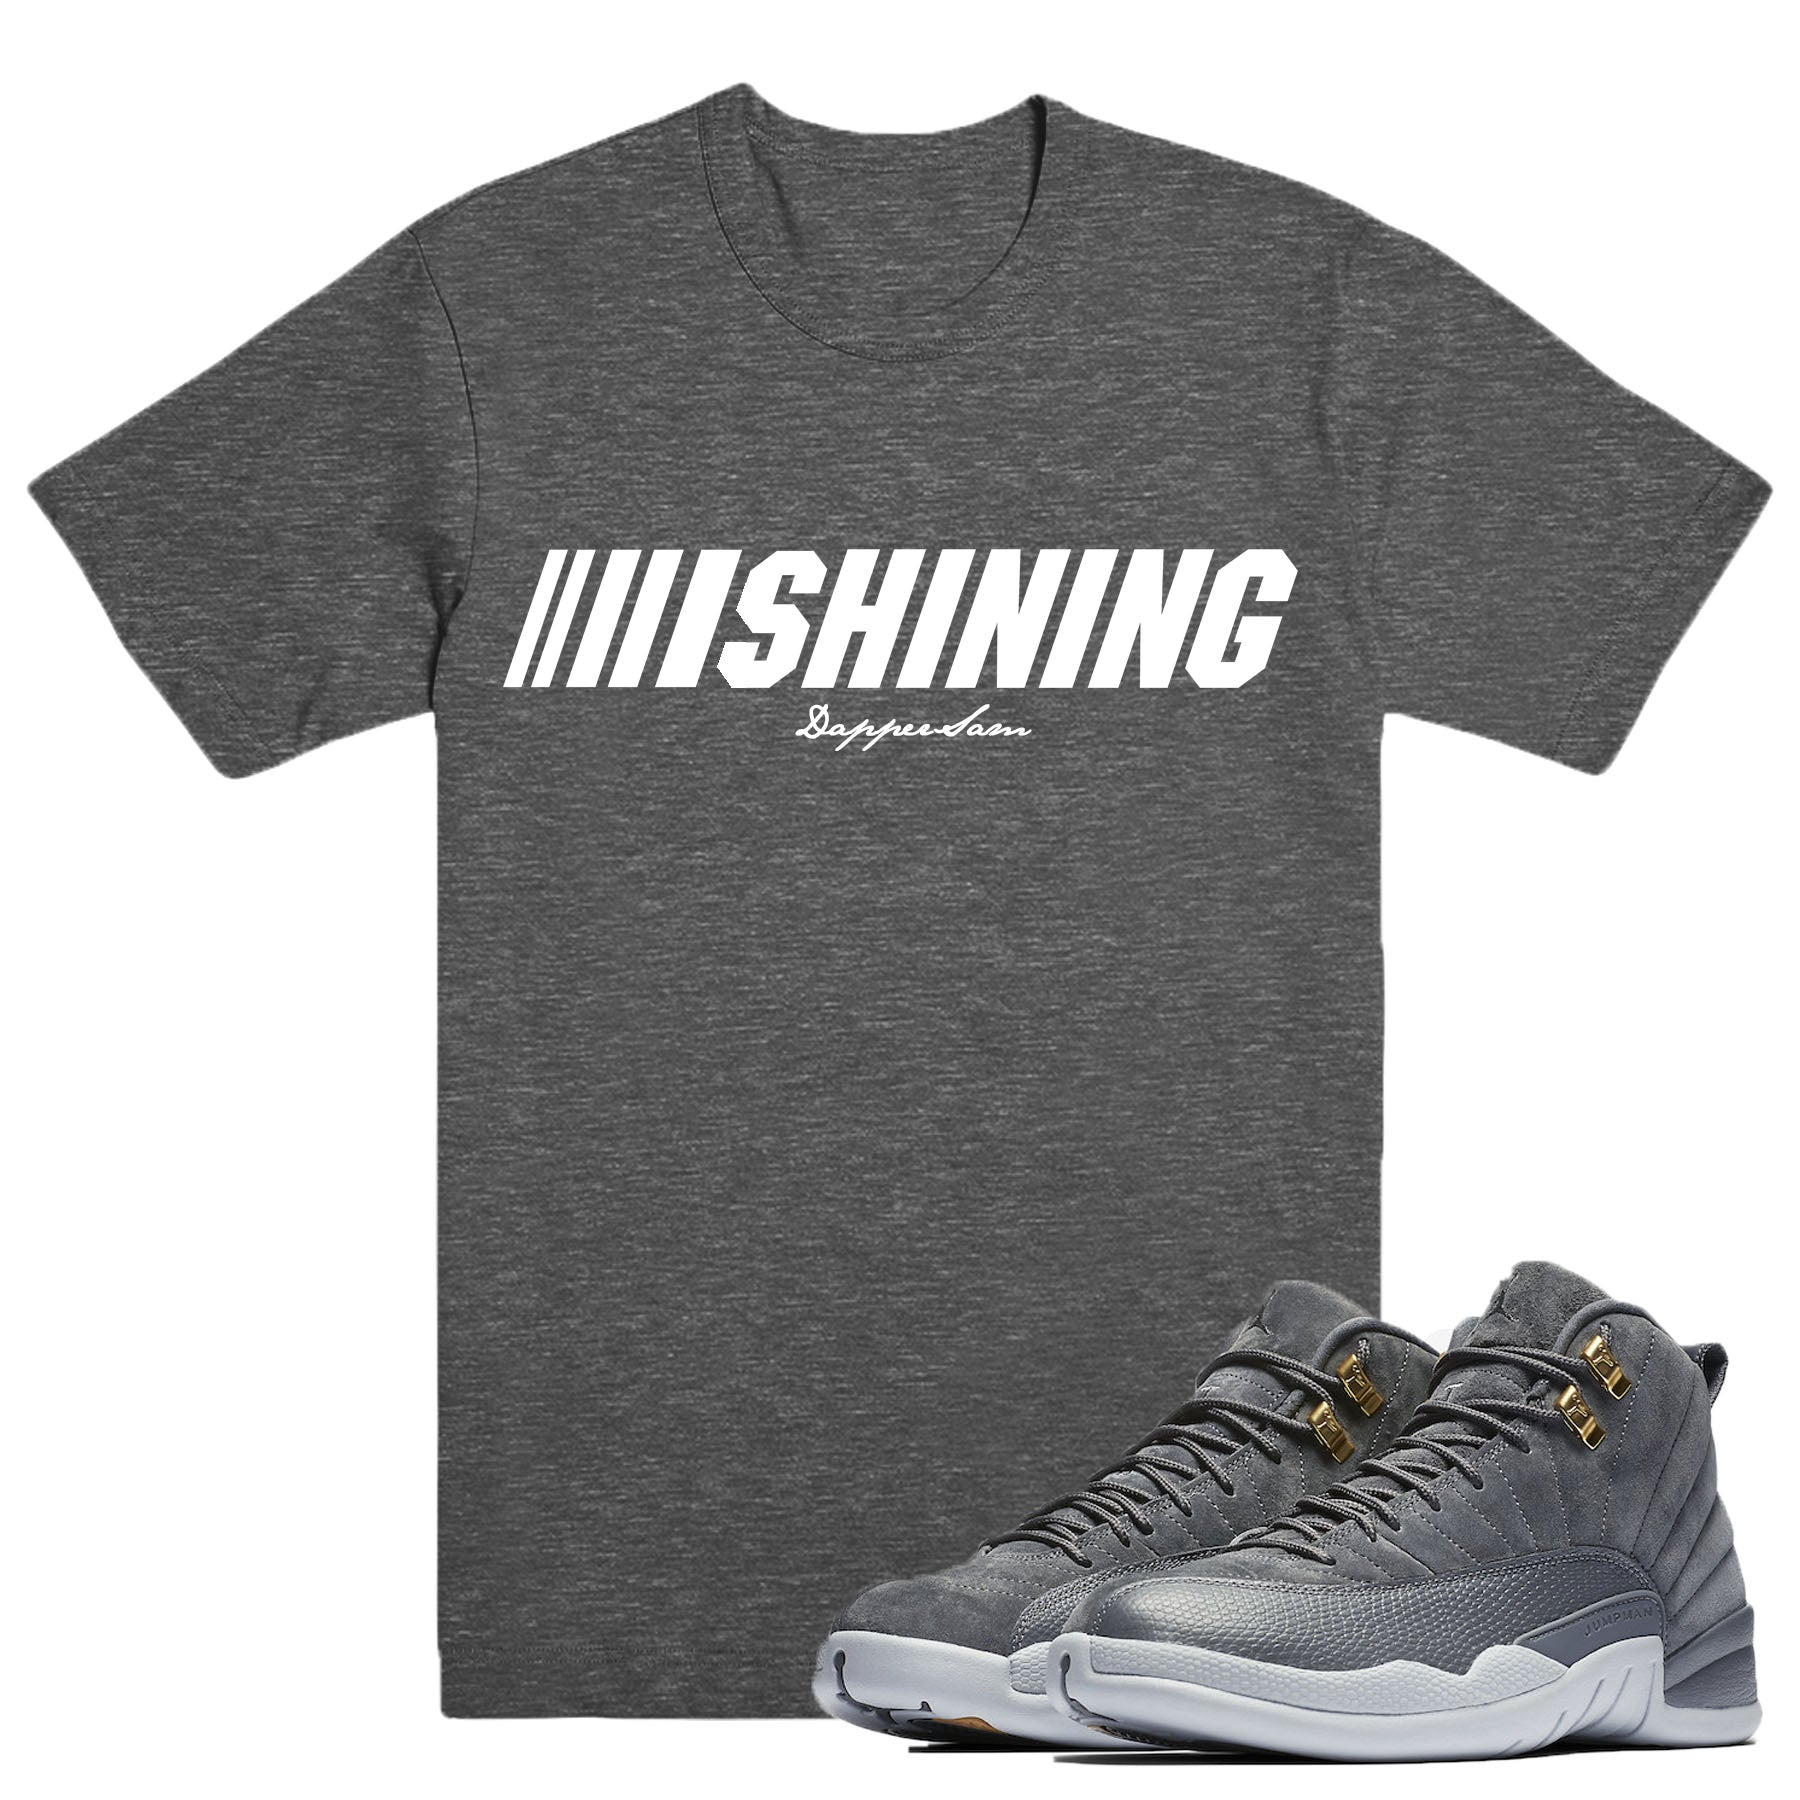 ddcd623487e8 shining-dark-grey-12-charcoal-sneaker-match-tee.jpg v 1510831412